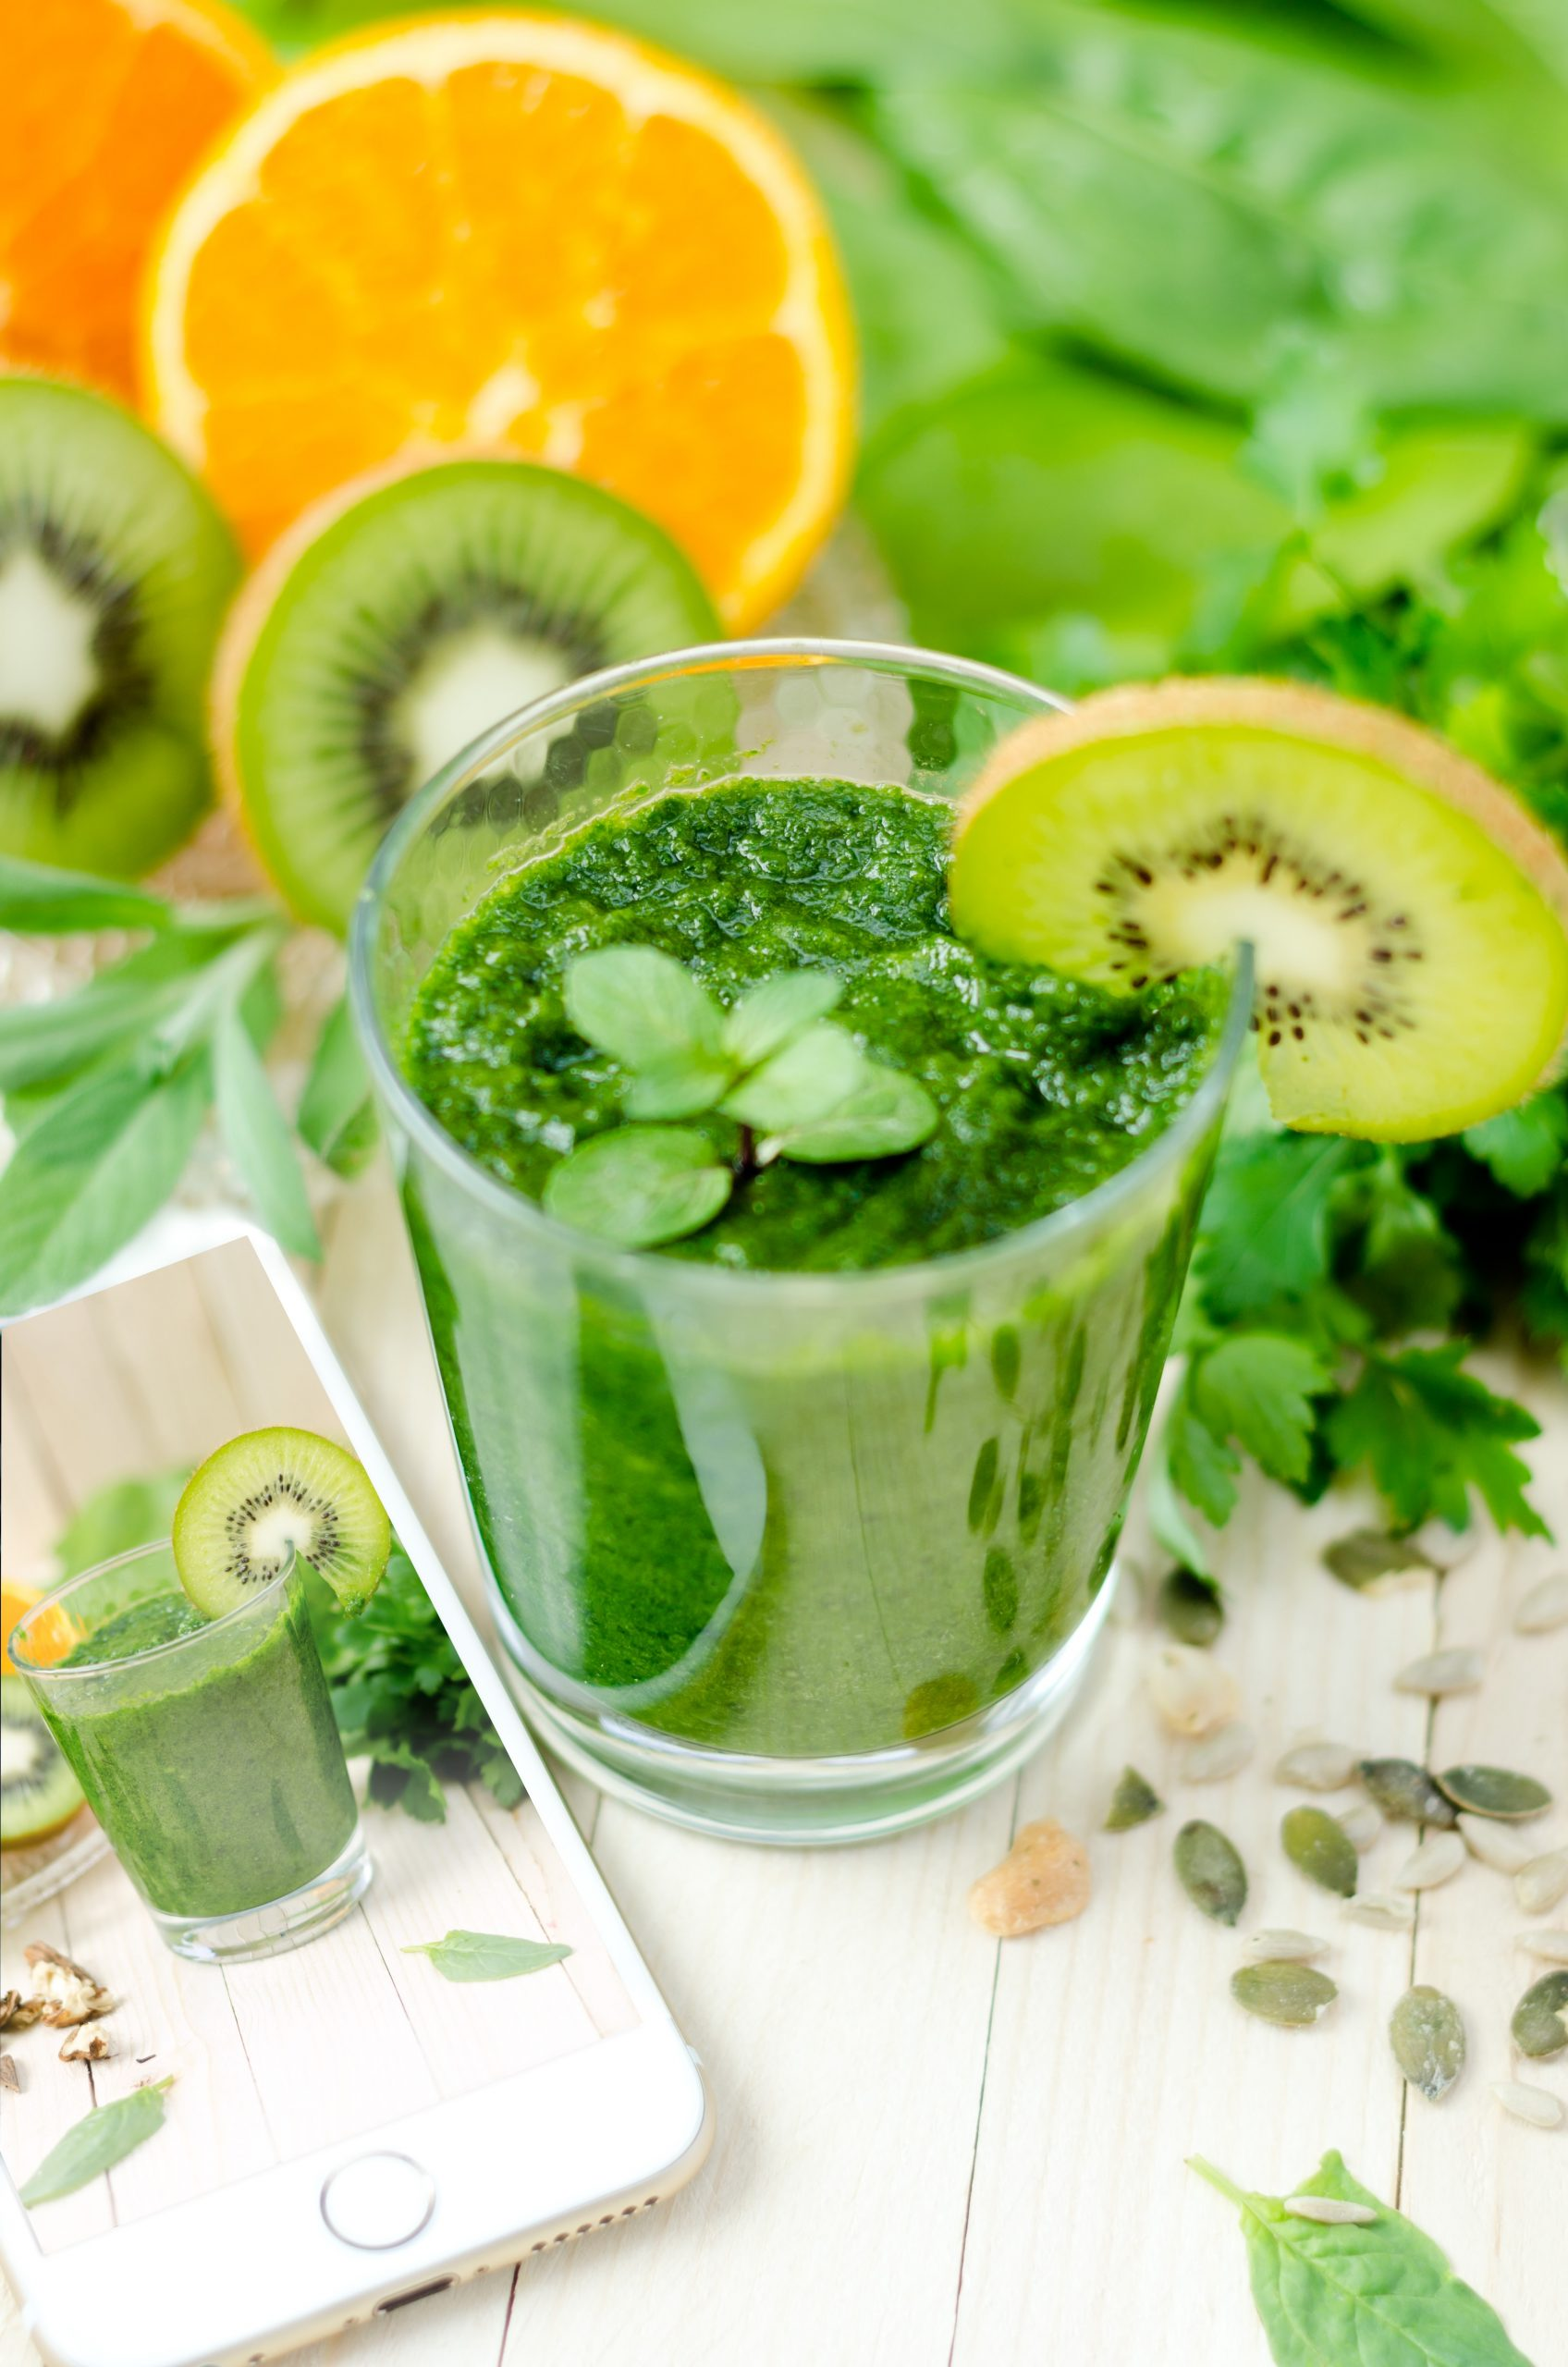 Green juice with a kiwi stuck into it and more green vegetables visible in the background